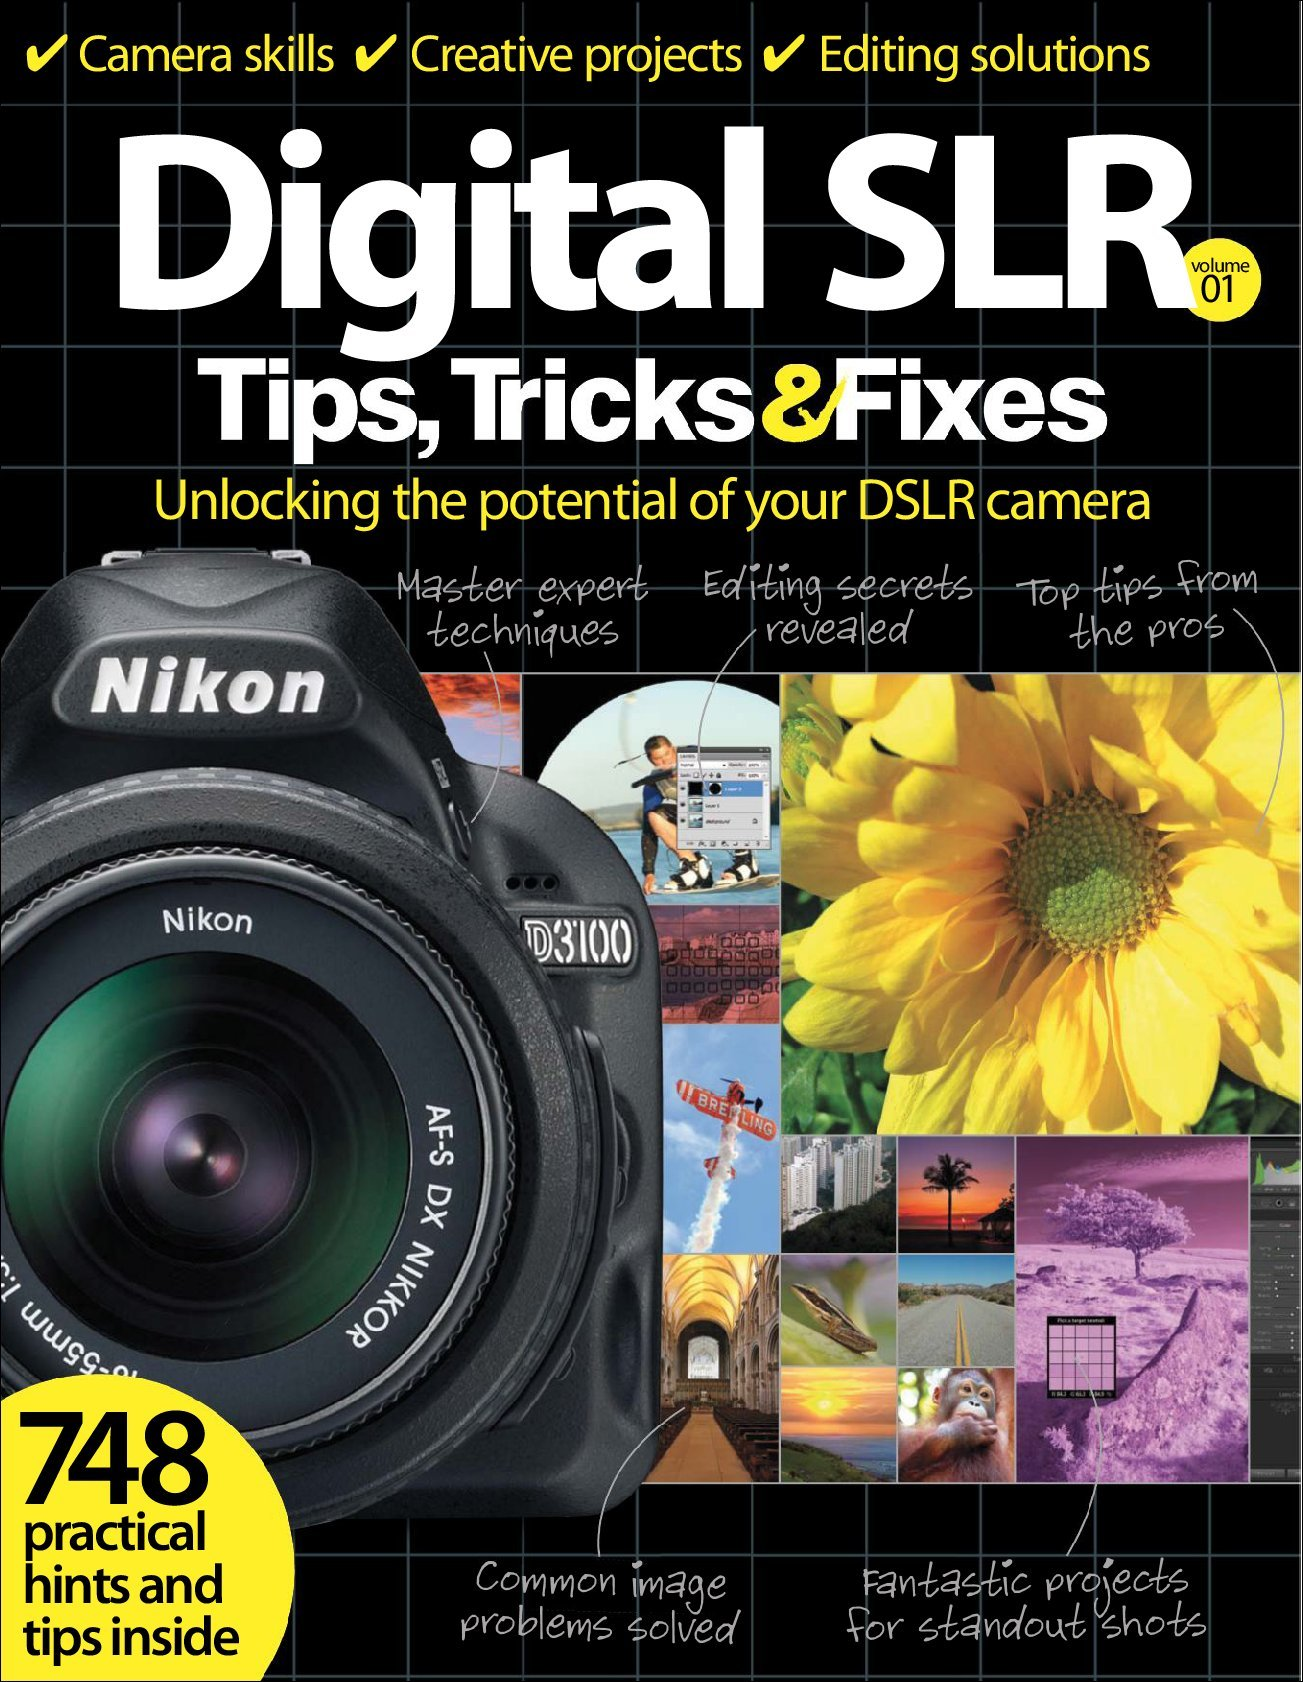 Digital SLR Tips Tricks Fixes Digital